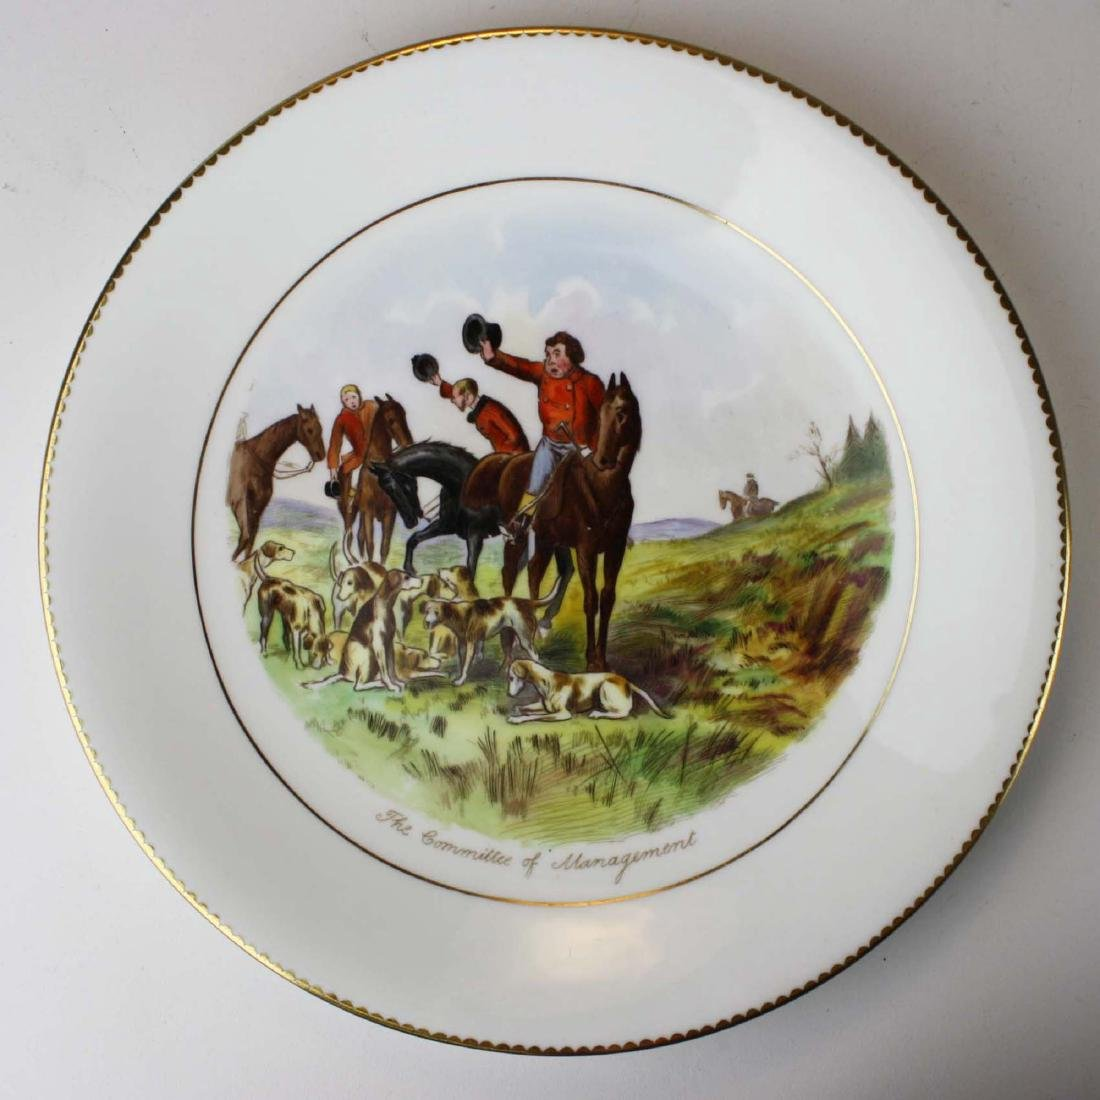 9 Wedgwood porcelain plates with English Equestrian - 10